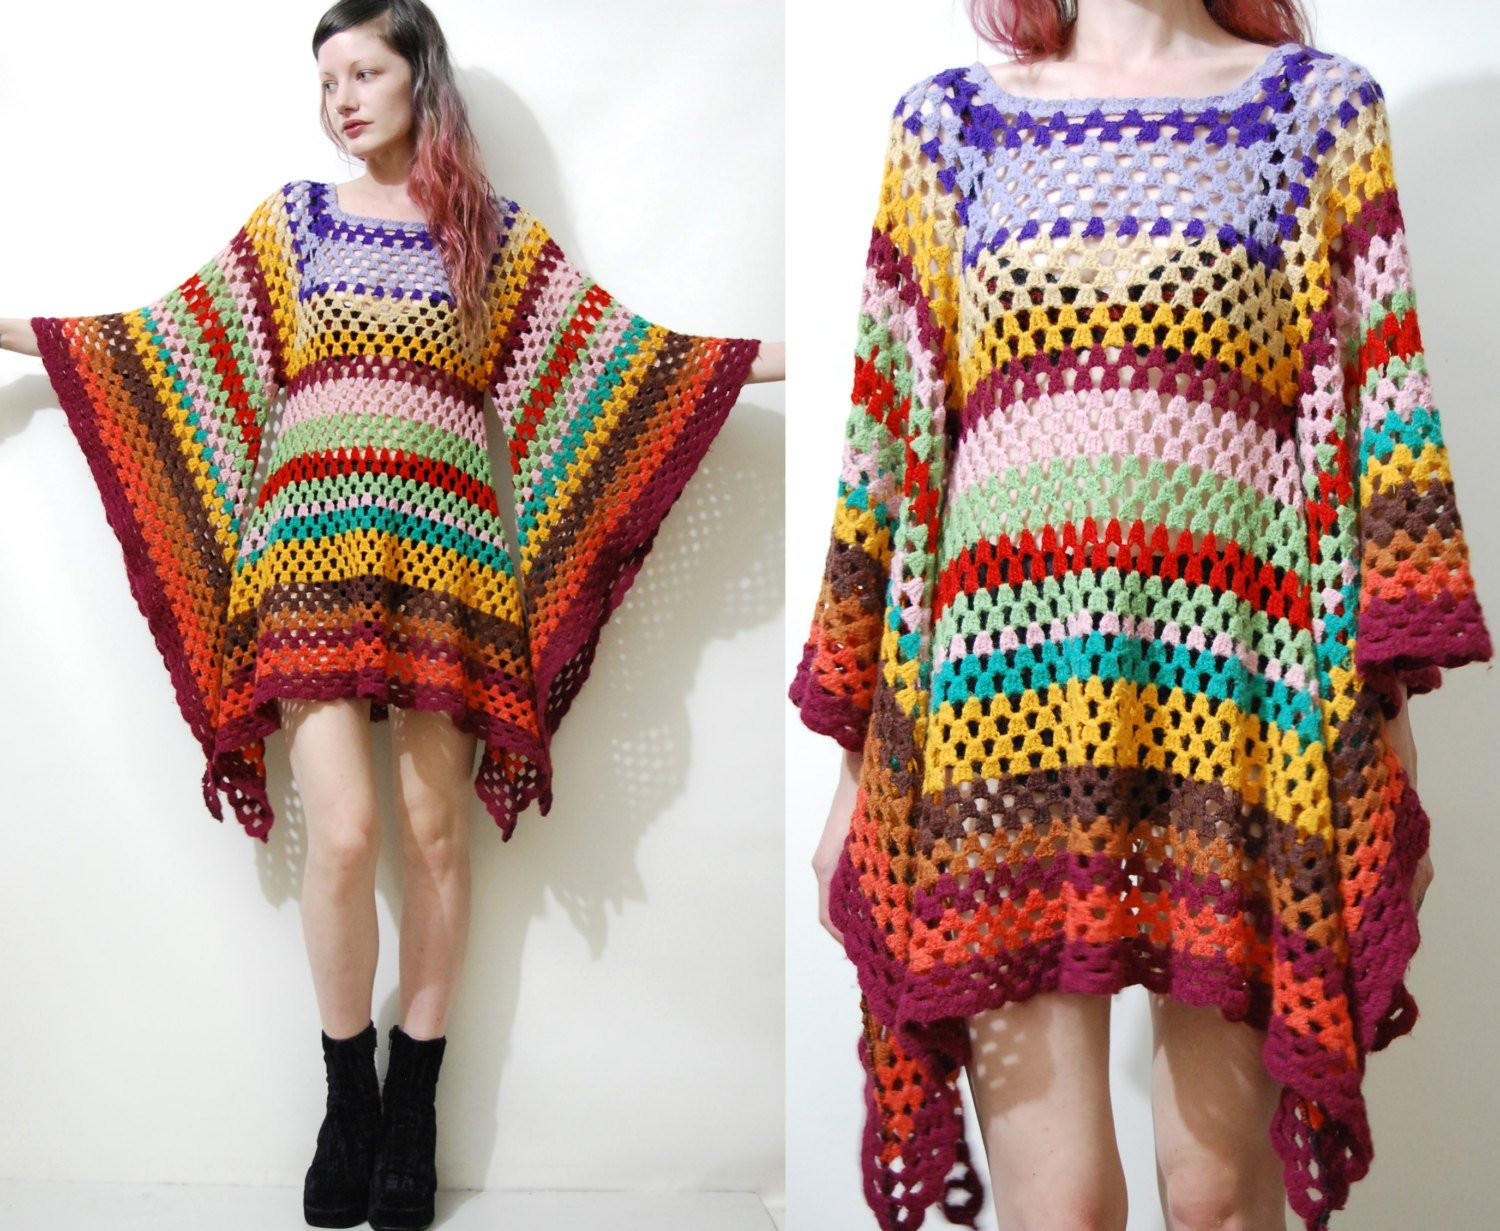 Crochet Clothing Awesome Crochet Dress Vintage Colourful Granny Square Bell Sleeve Mini Of Awesome 49 Images Crochet Clothing